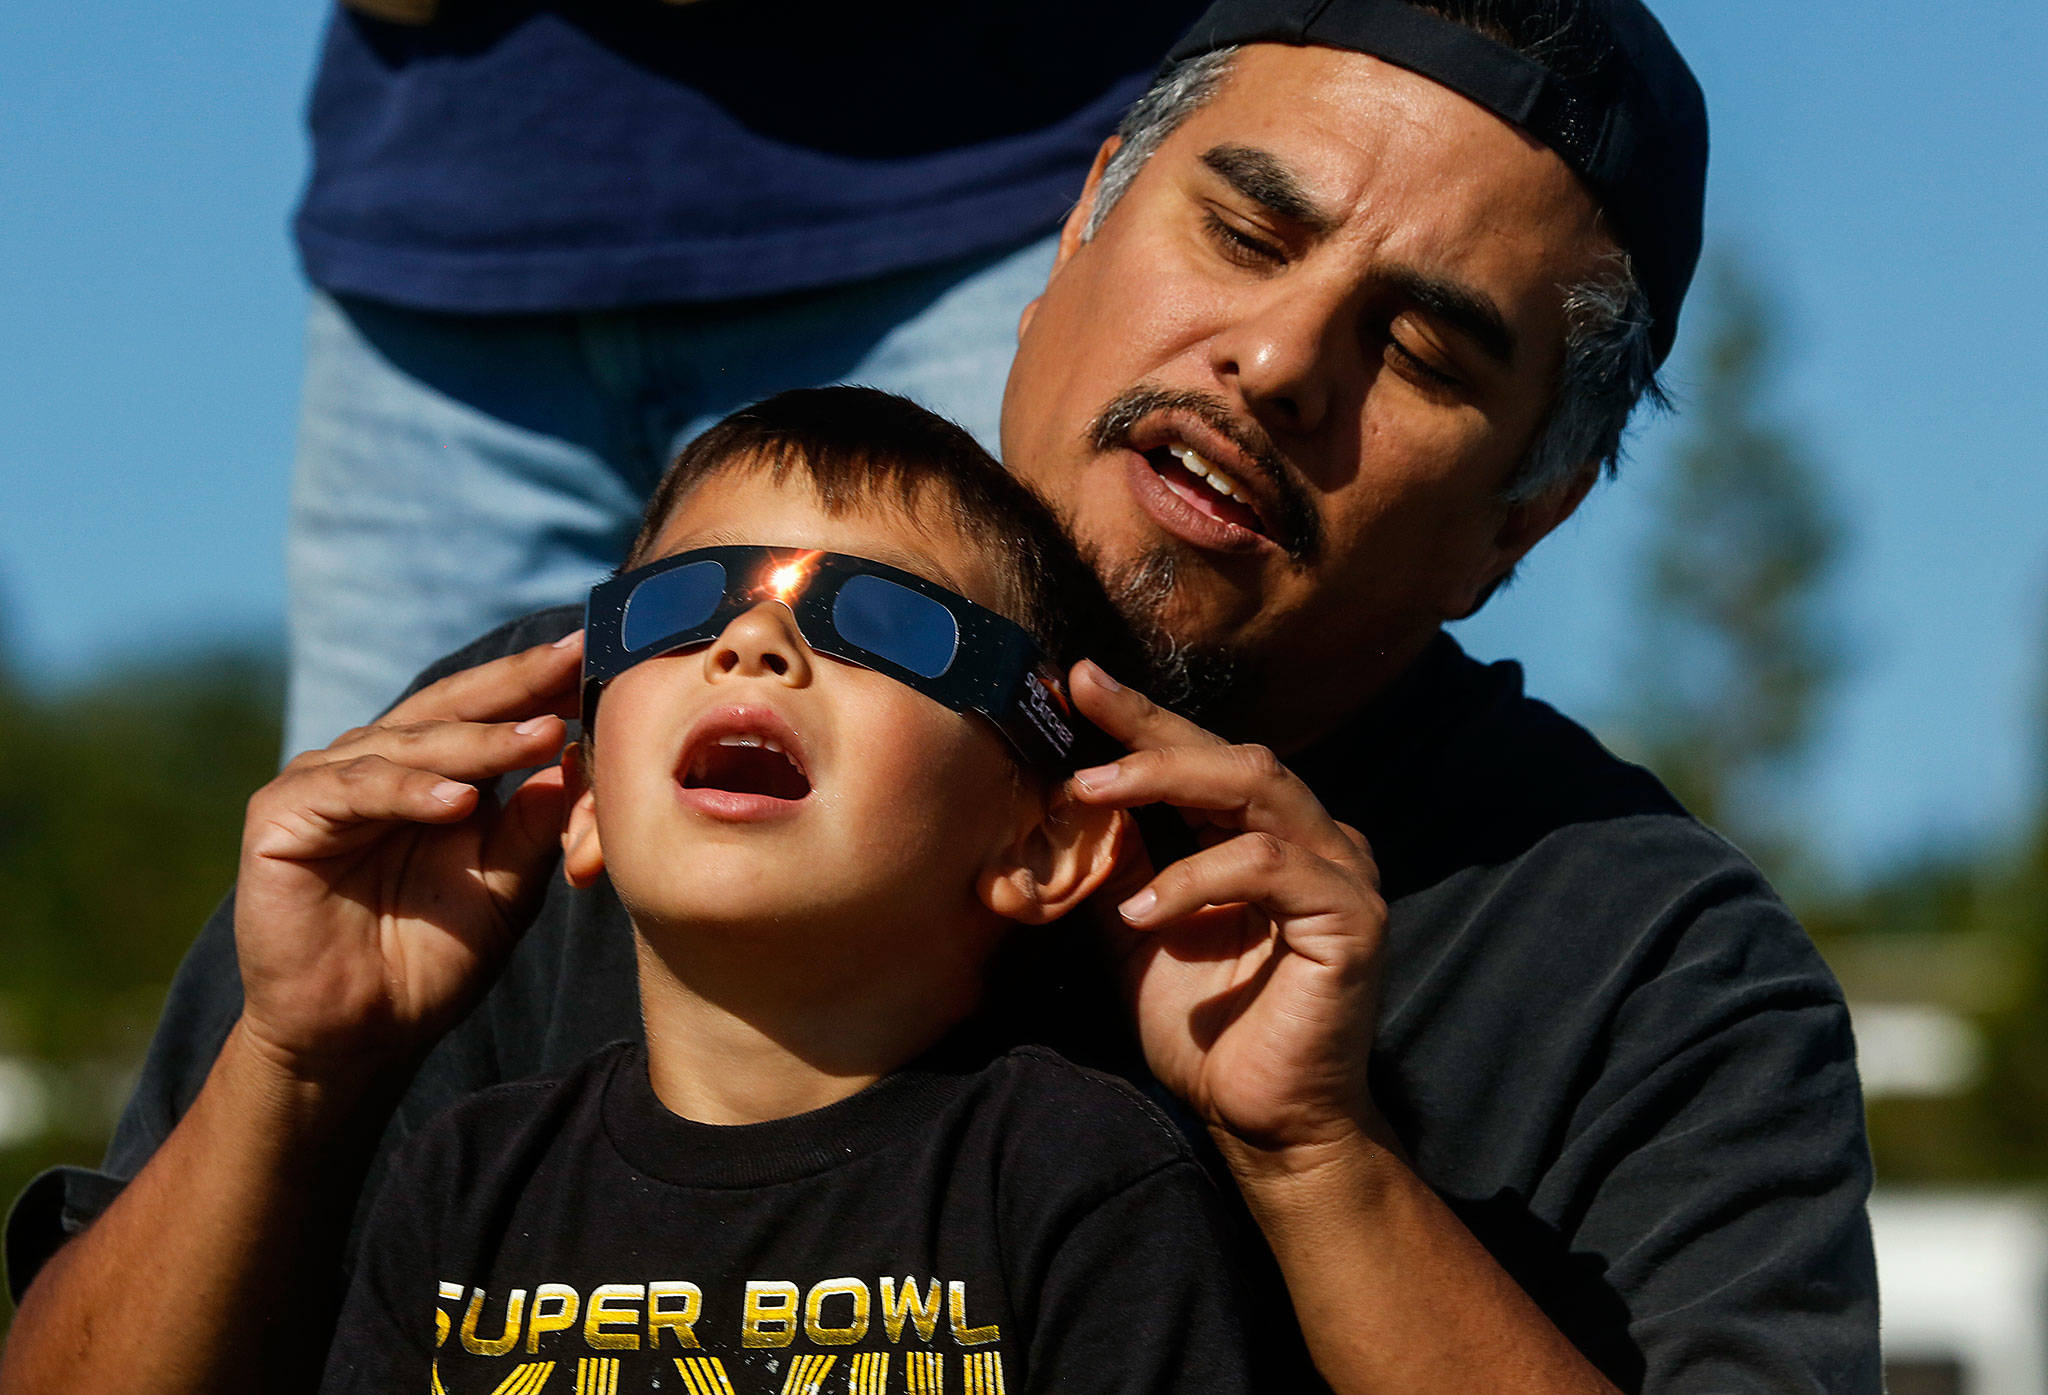 Just off Paine Field near the Future of Flight Aviation Center, Ben Flores of Mukilteo helps his sons, Vincent, 5, and Benny (back), 9, view the solar eclipse through certified safety glasses on Aug. 21. (Dan Bates / The Herald)